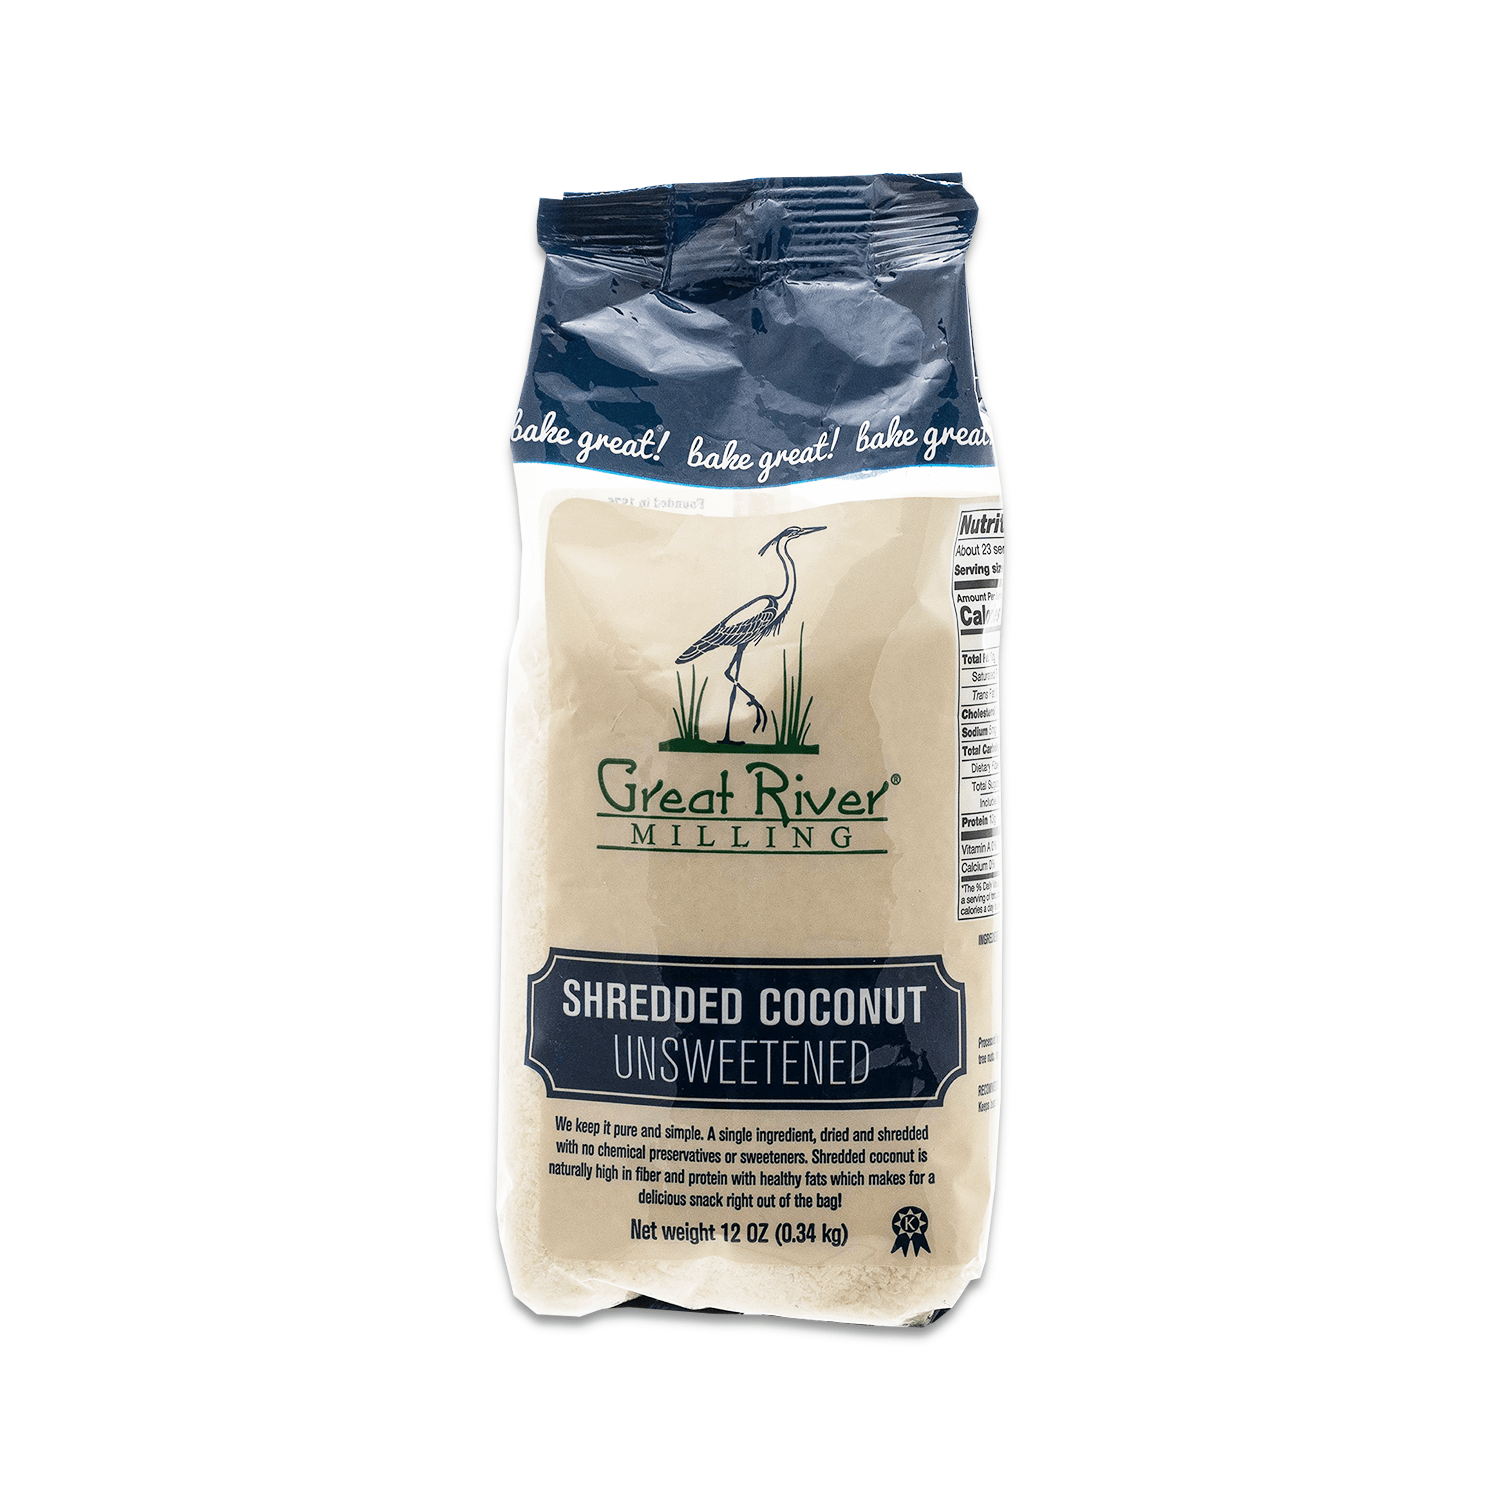 Great River Milling Shredded Unsweetened Coconut